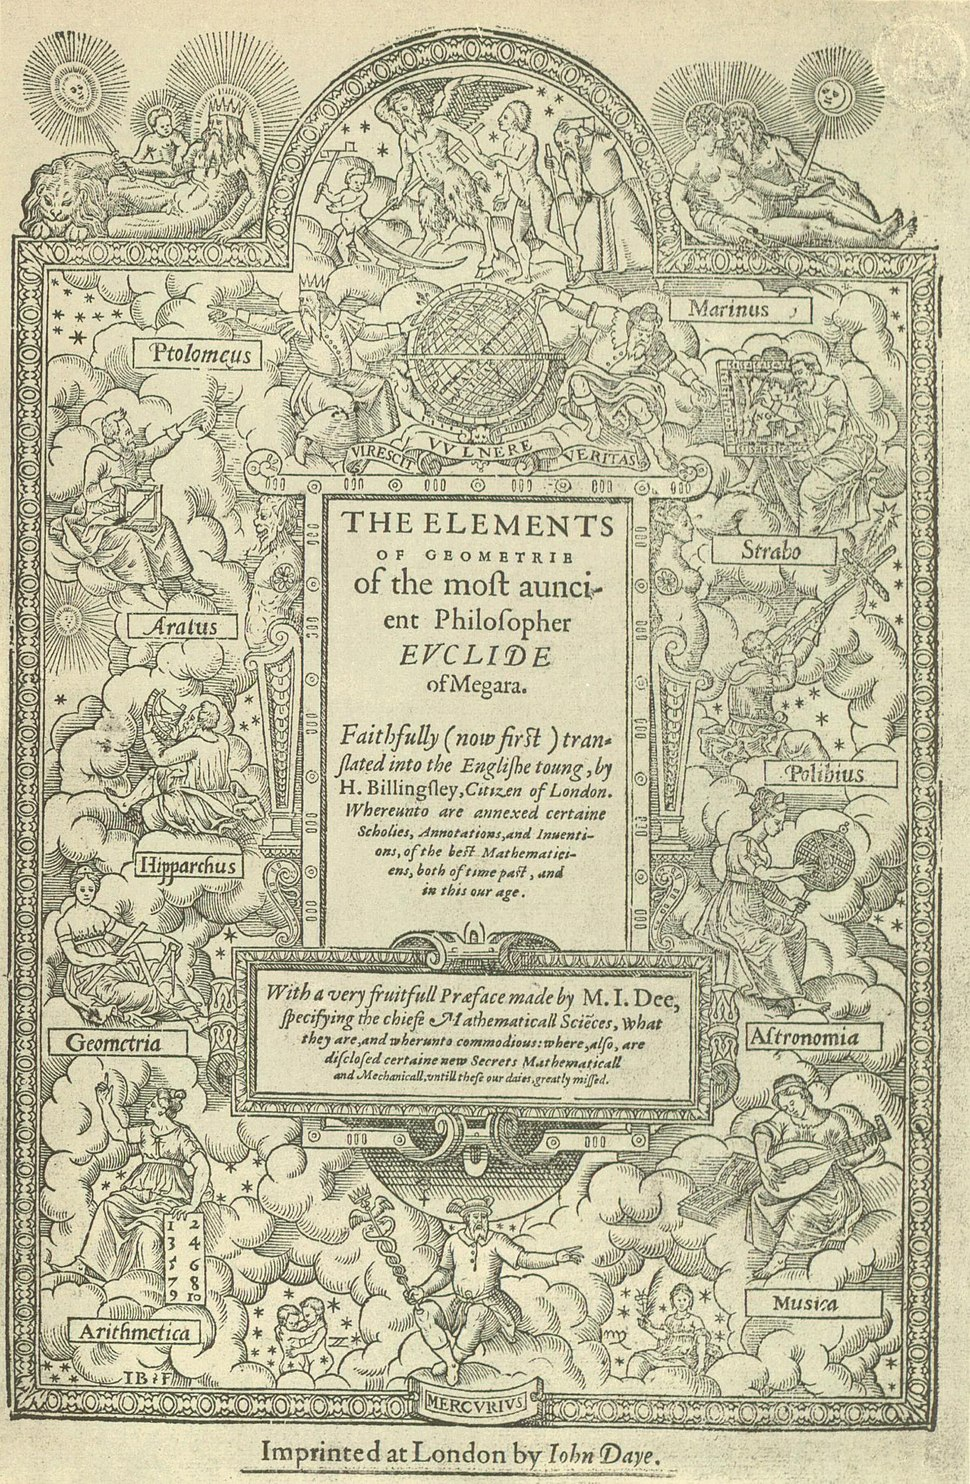 Title page of Sir Henry Billingsley's first English version of Euclid's Elements, 1570 (560x900)